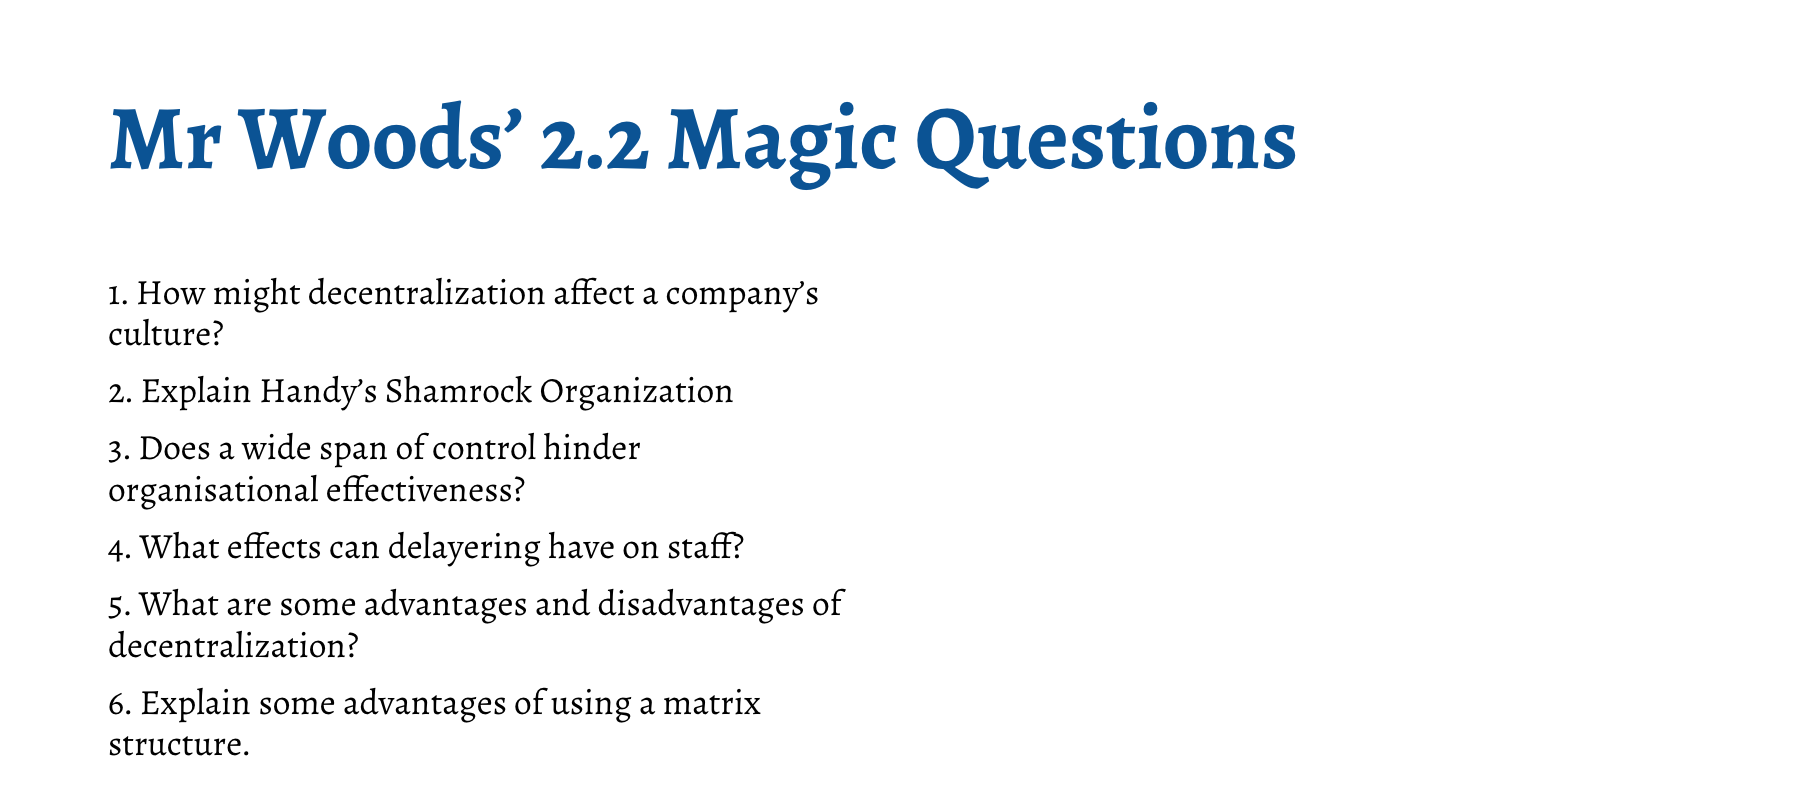 business management quiz 2 Quiz name: logo quiz-easy set 2 logo quiz for management students, aspirants and professionals the quiz will test their brand and logo knowledge with questions along with the results in.